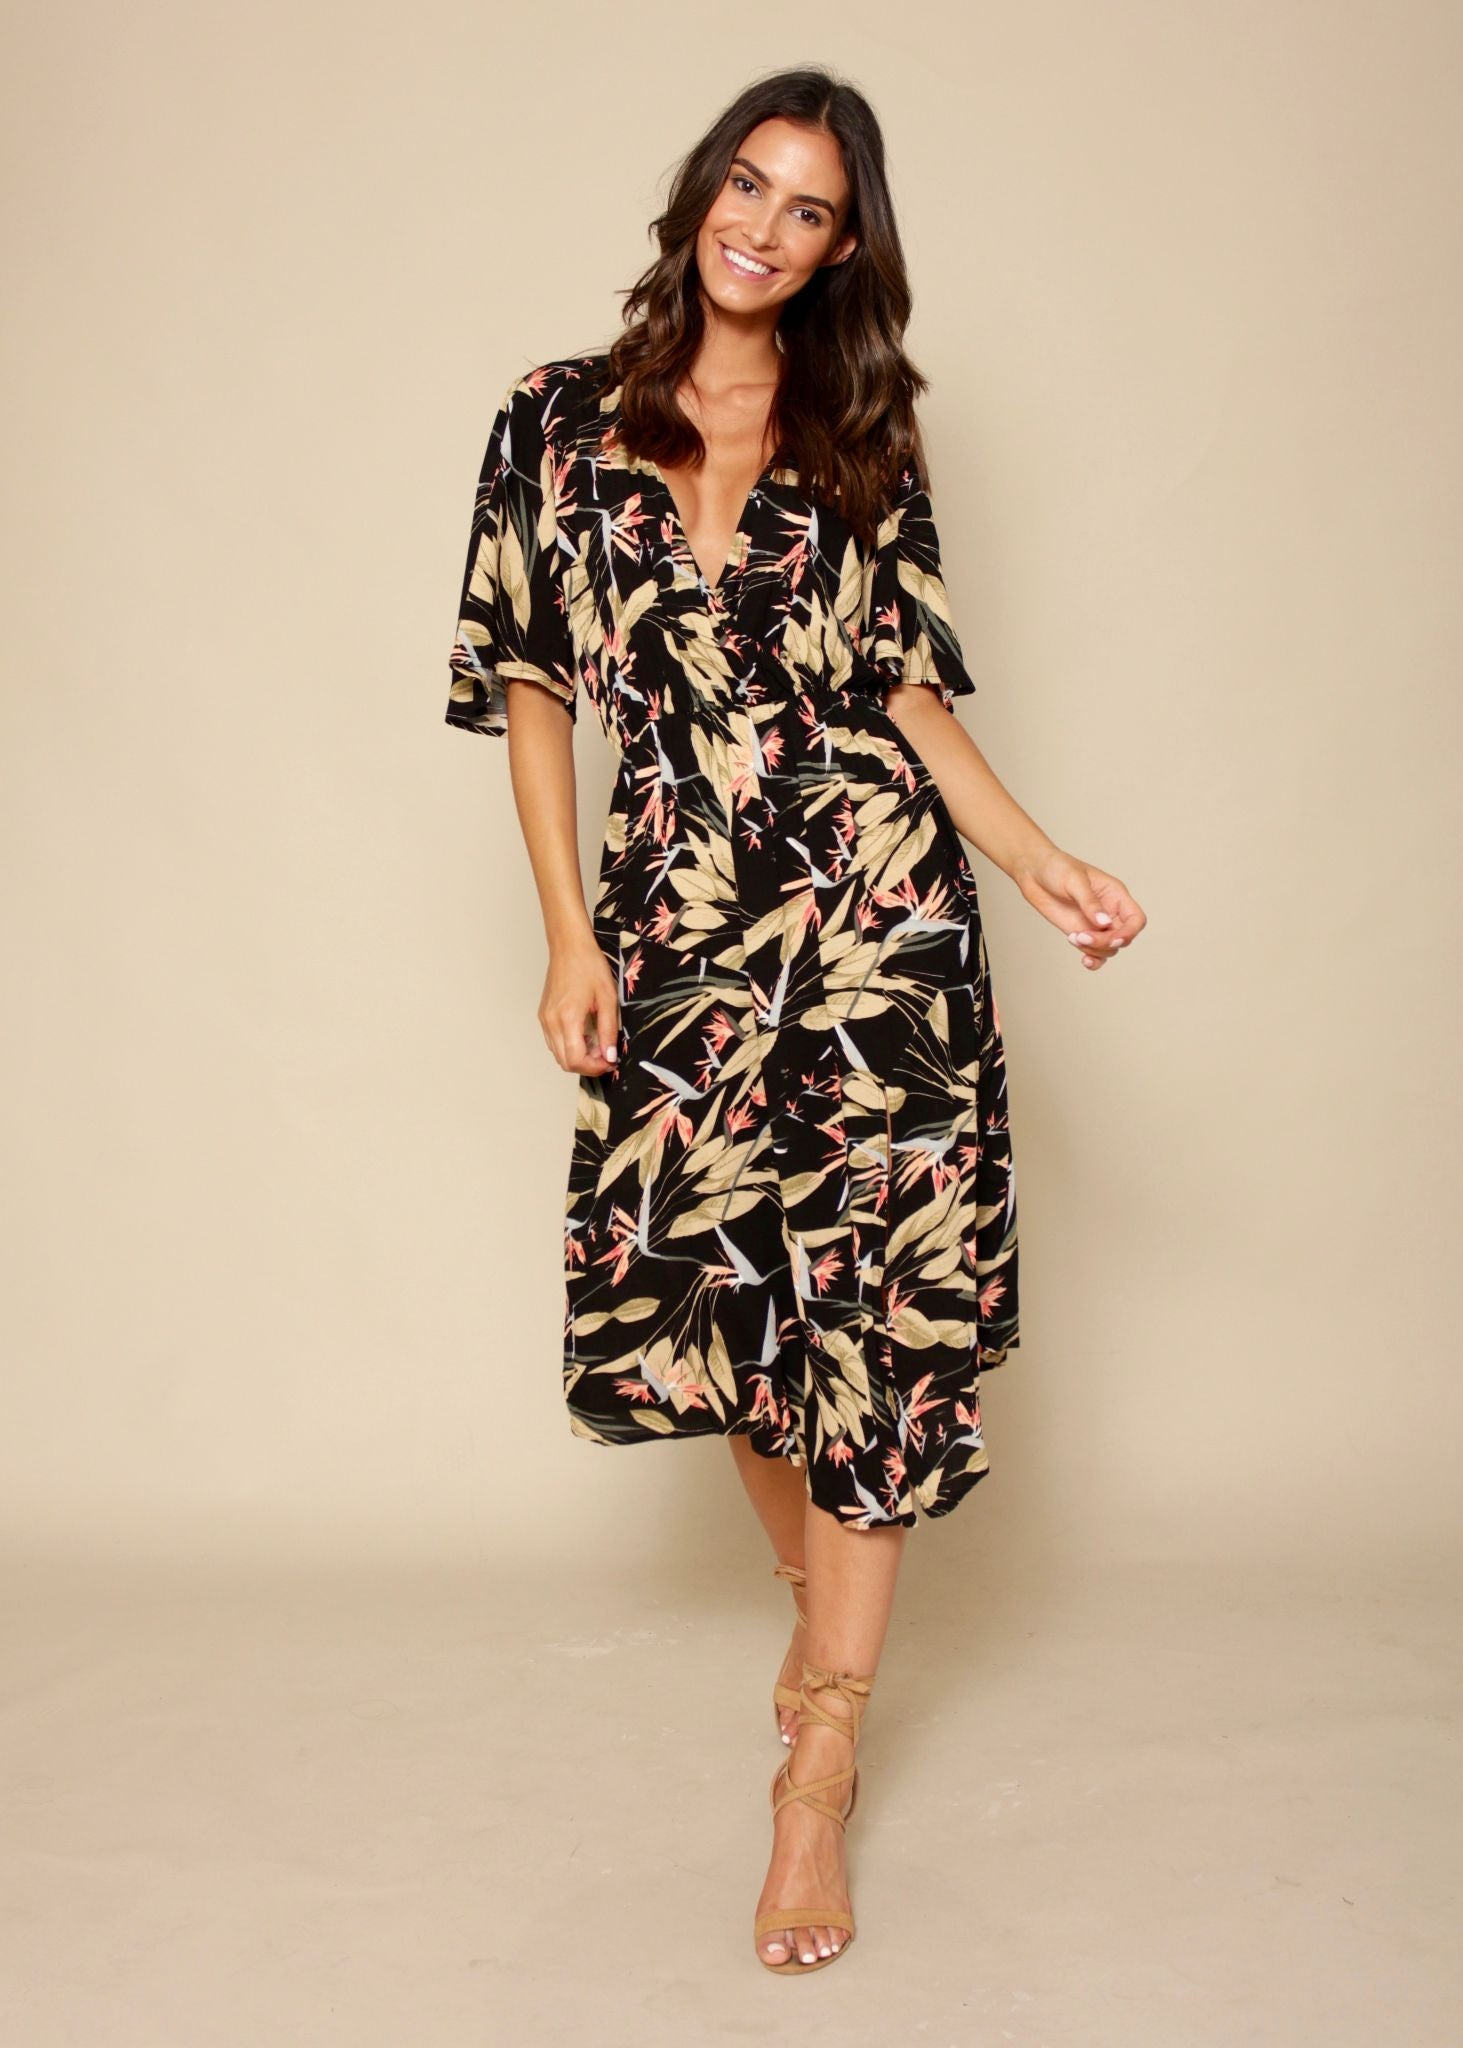 Elizabeth Bay Midi Dress- Black Paradise